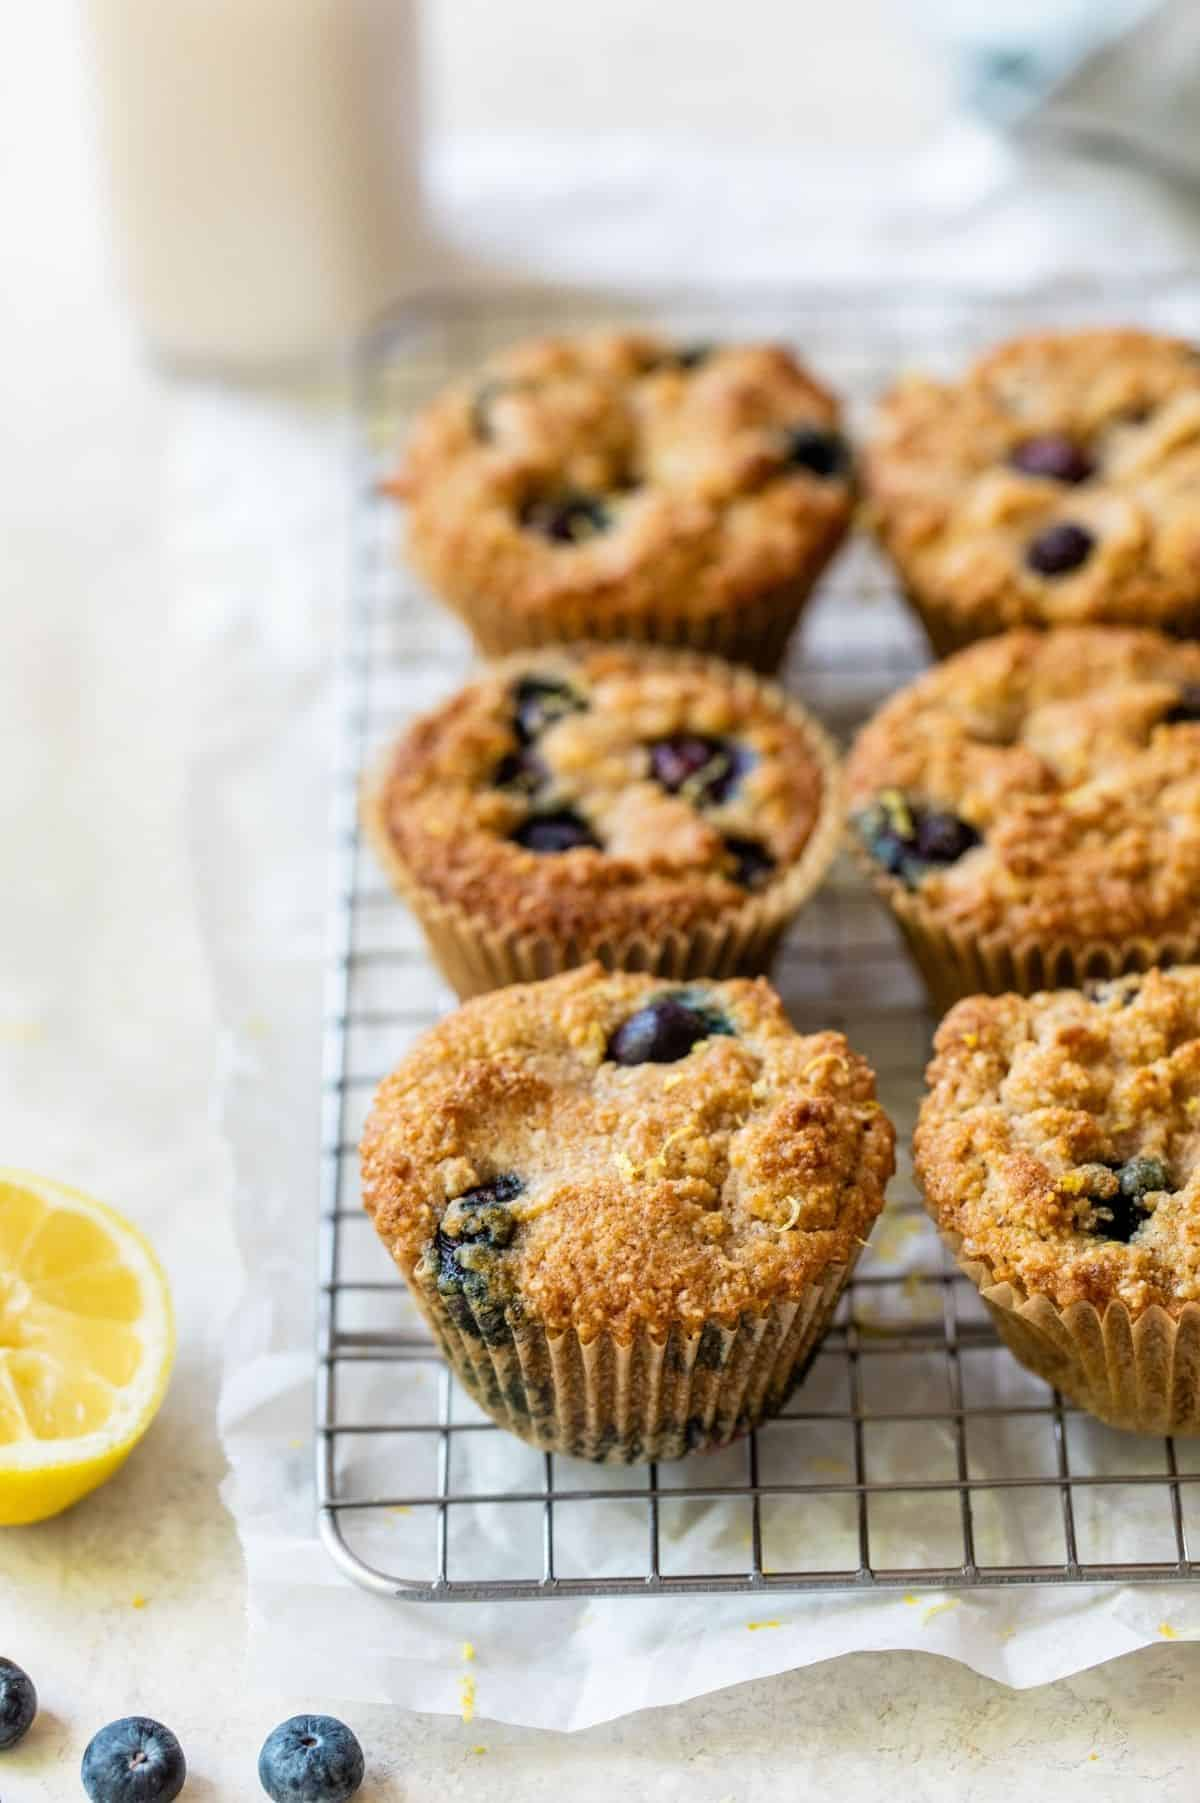 blueberry muffins on a cooling rack near a lemon